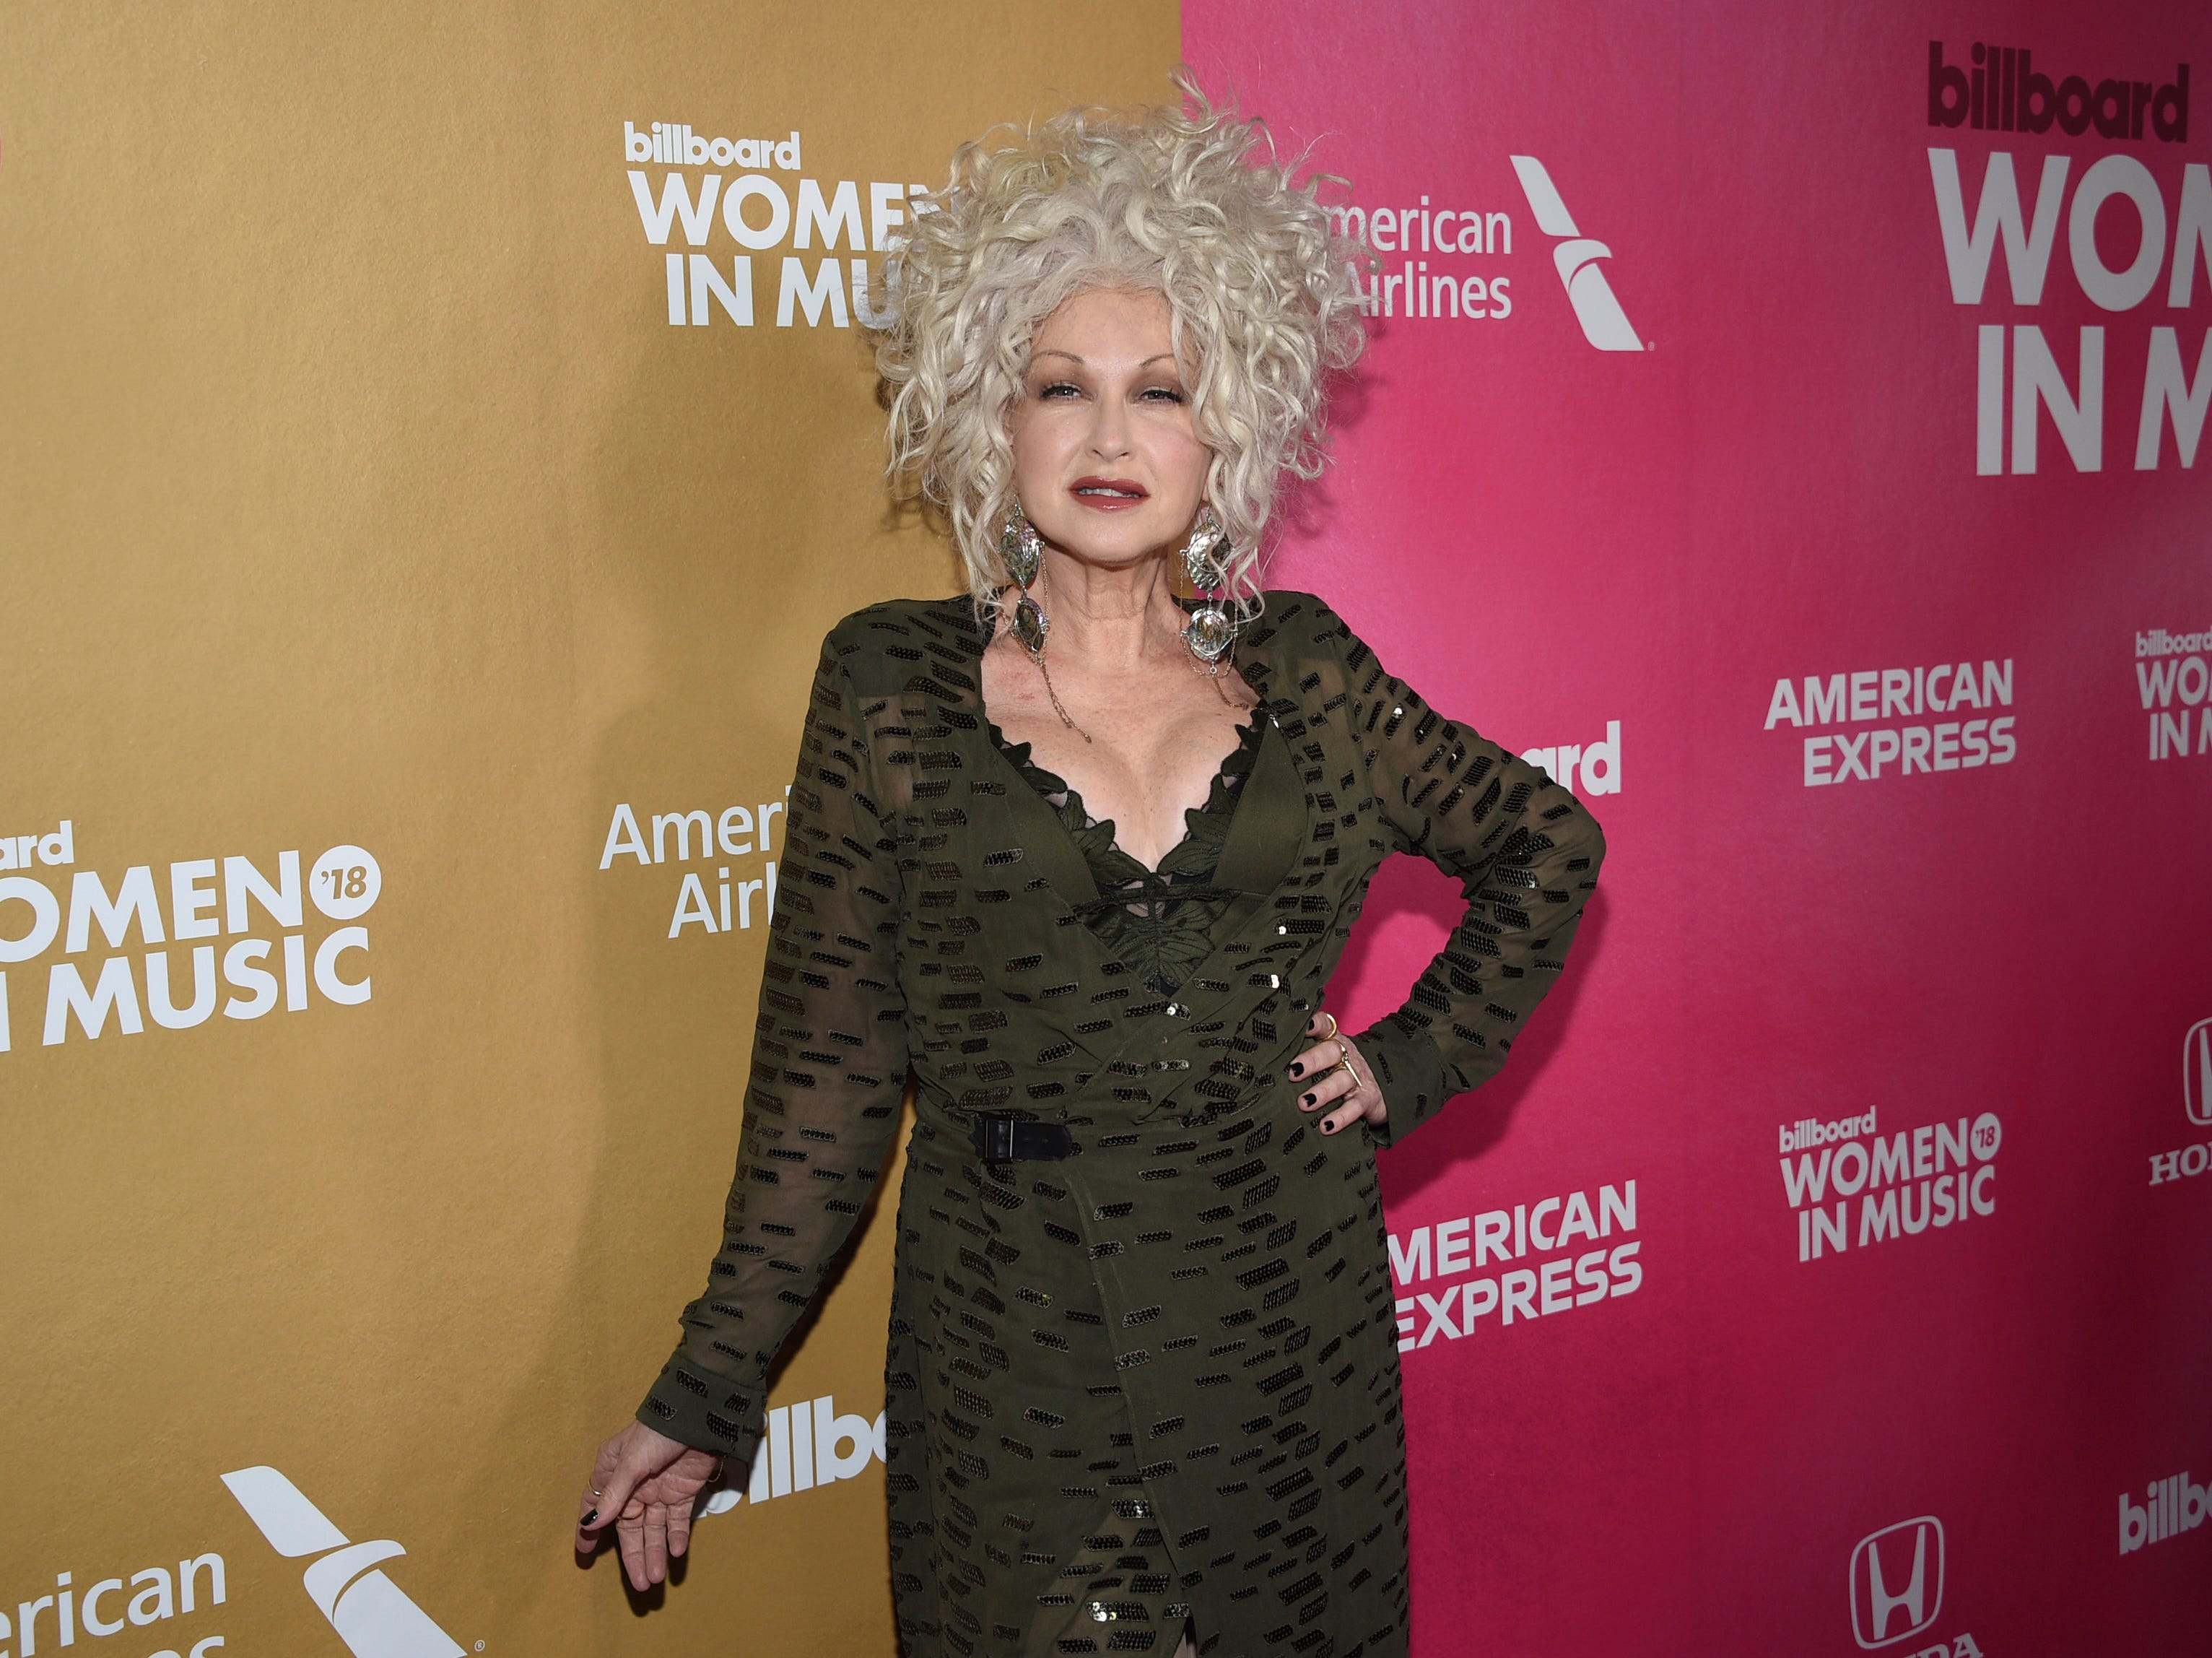 Cyndi Lauper attends the 13th annual Billboard Women in Music event at Pier 36 on Thursday, Dec. 6, 2018, in New York. (Photo by Evan Agostini/Invision/AP) ORG XMIT: NYAK103